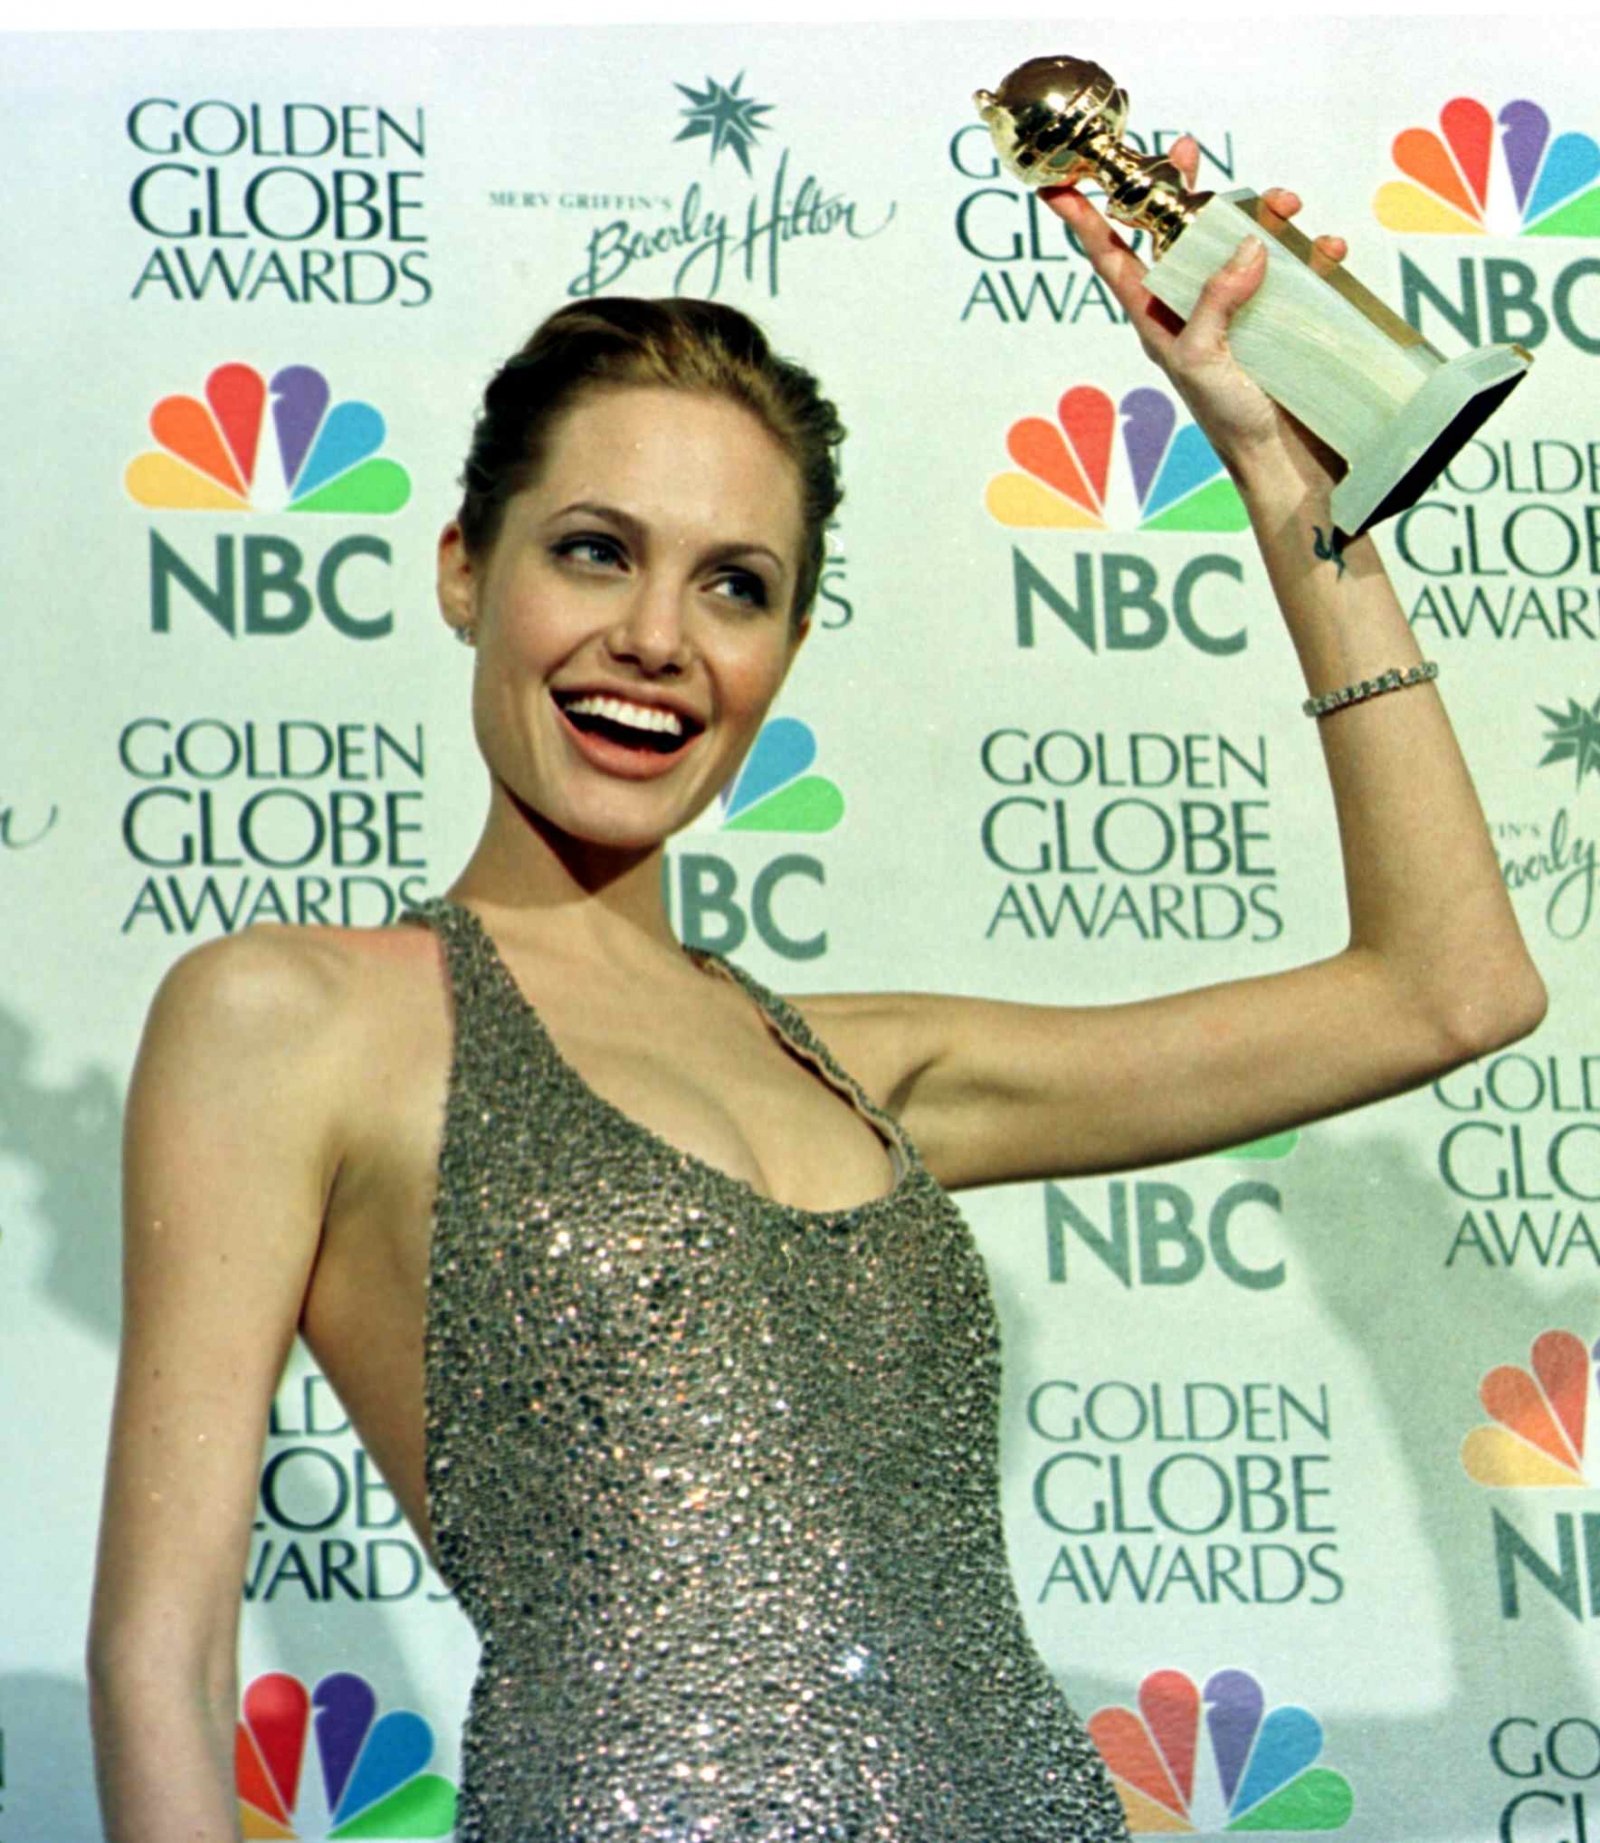 Angelina Jolie wins Golden Globe for Gia